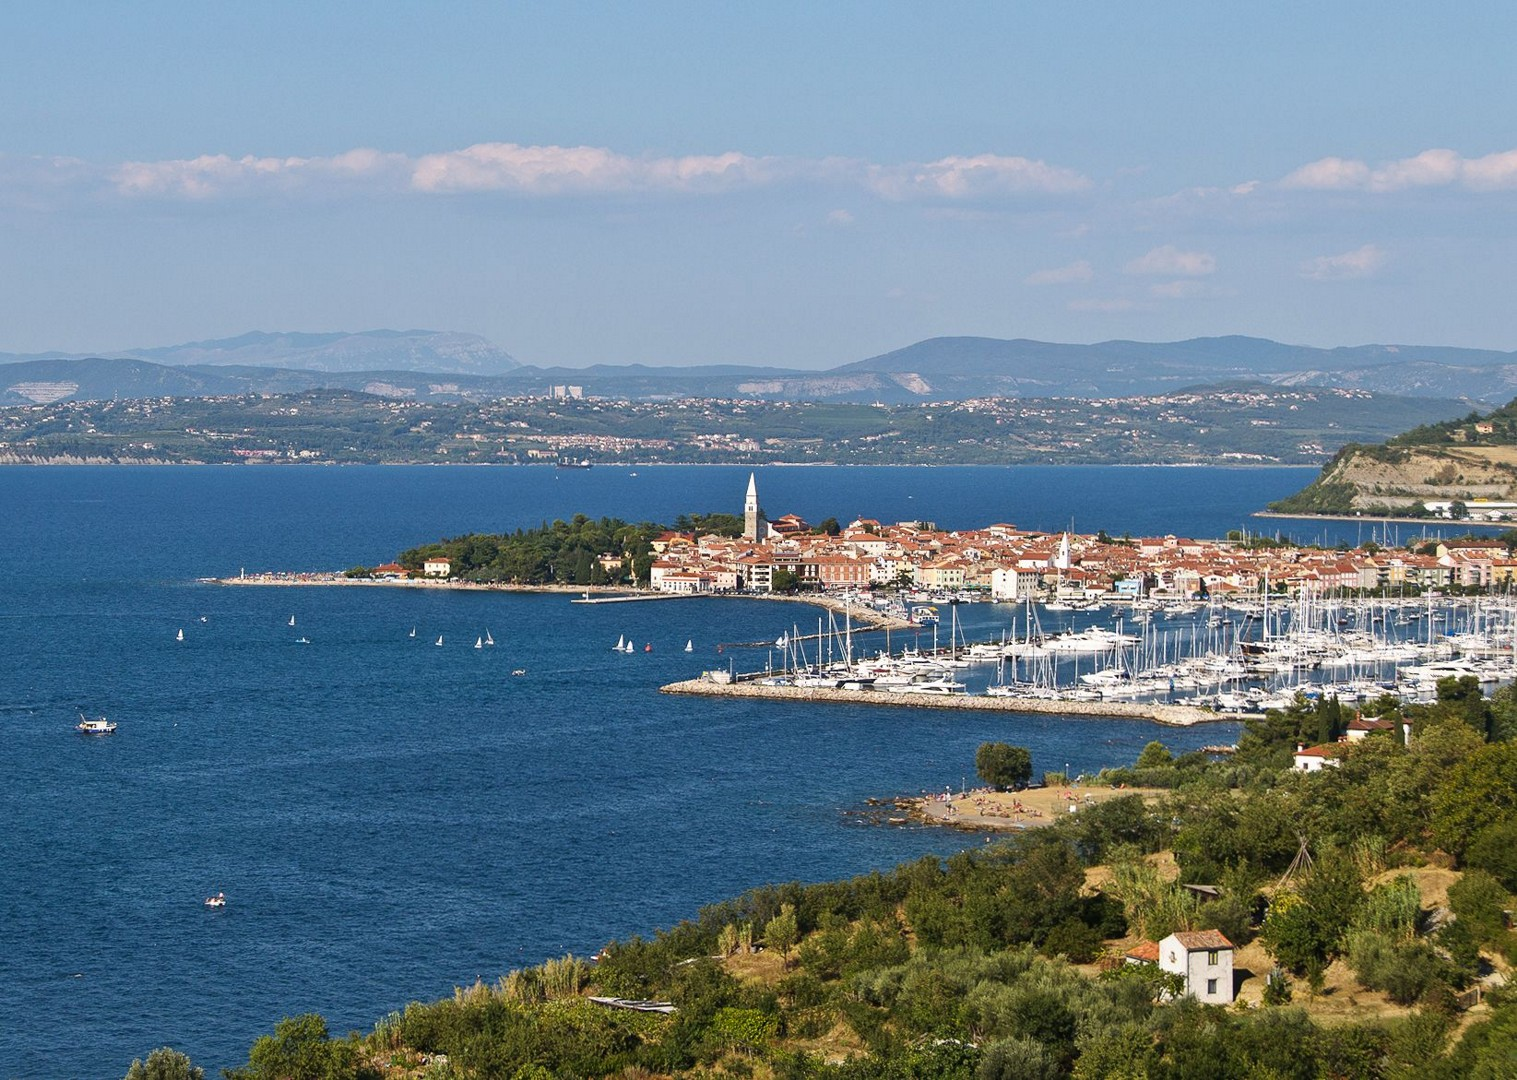 trieste-and-muggia-leisure-cycling-holiday-in-slovenia-capital-to-coast.jpg - Slovenia - Capital to Coast - Self-Guided Leisure Cycling Holiday - Leisure Cycling